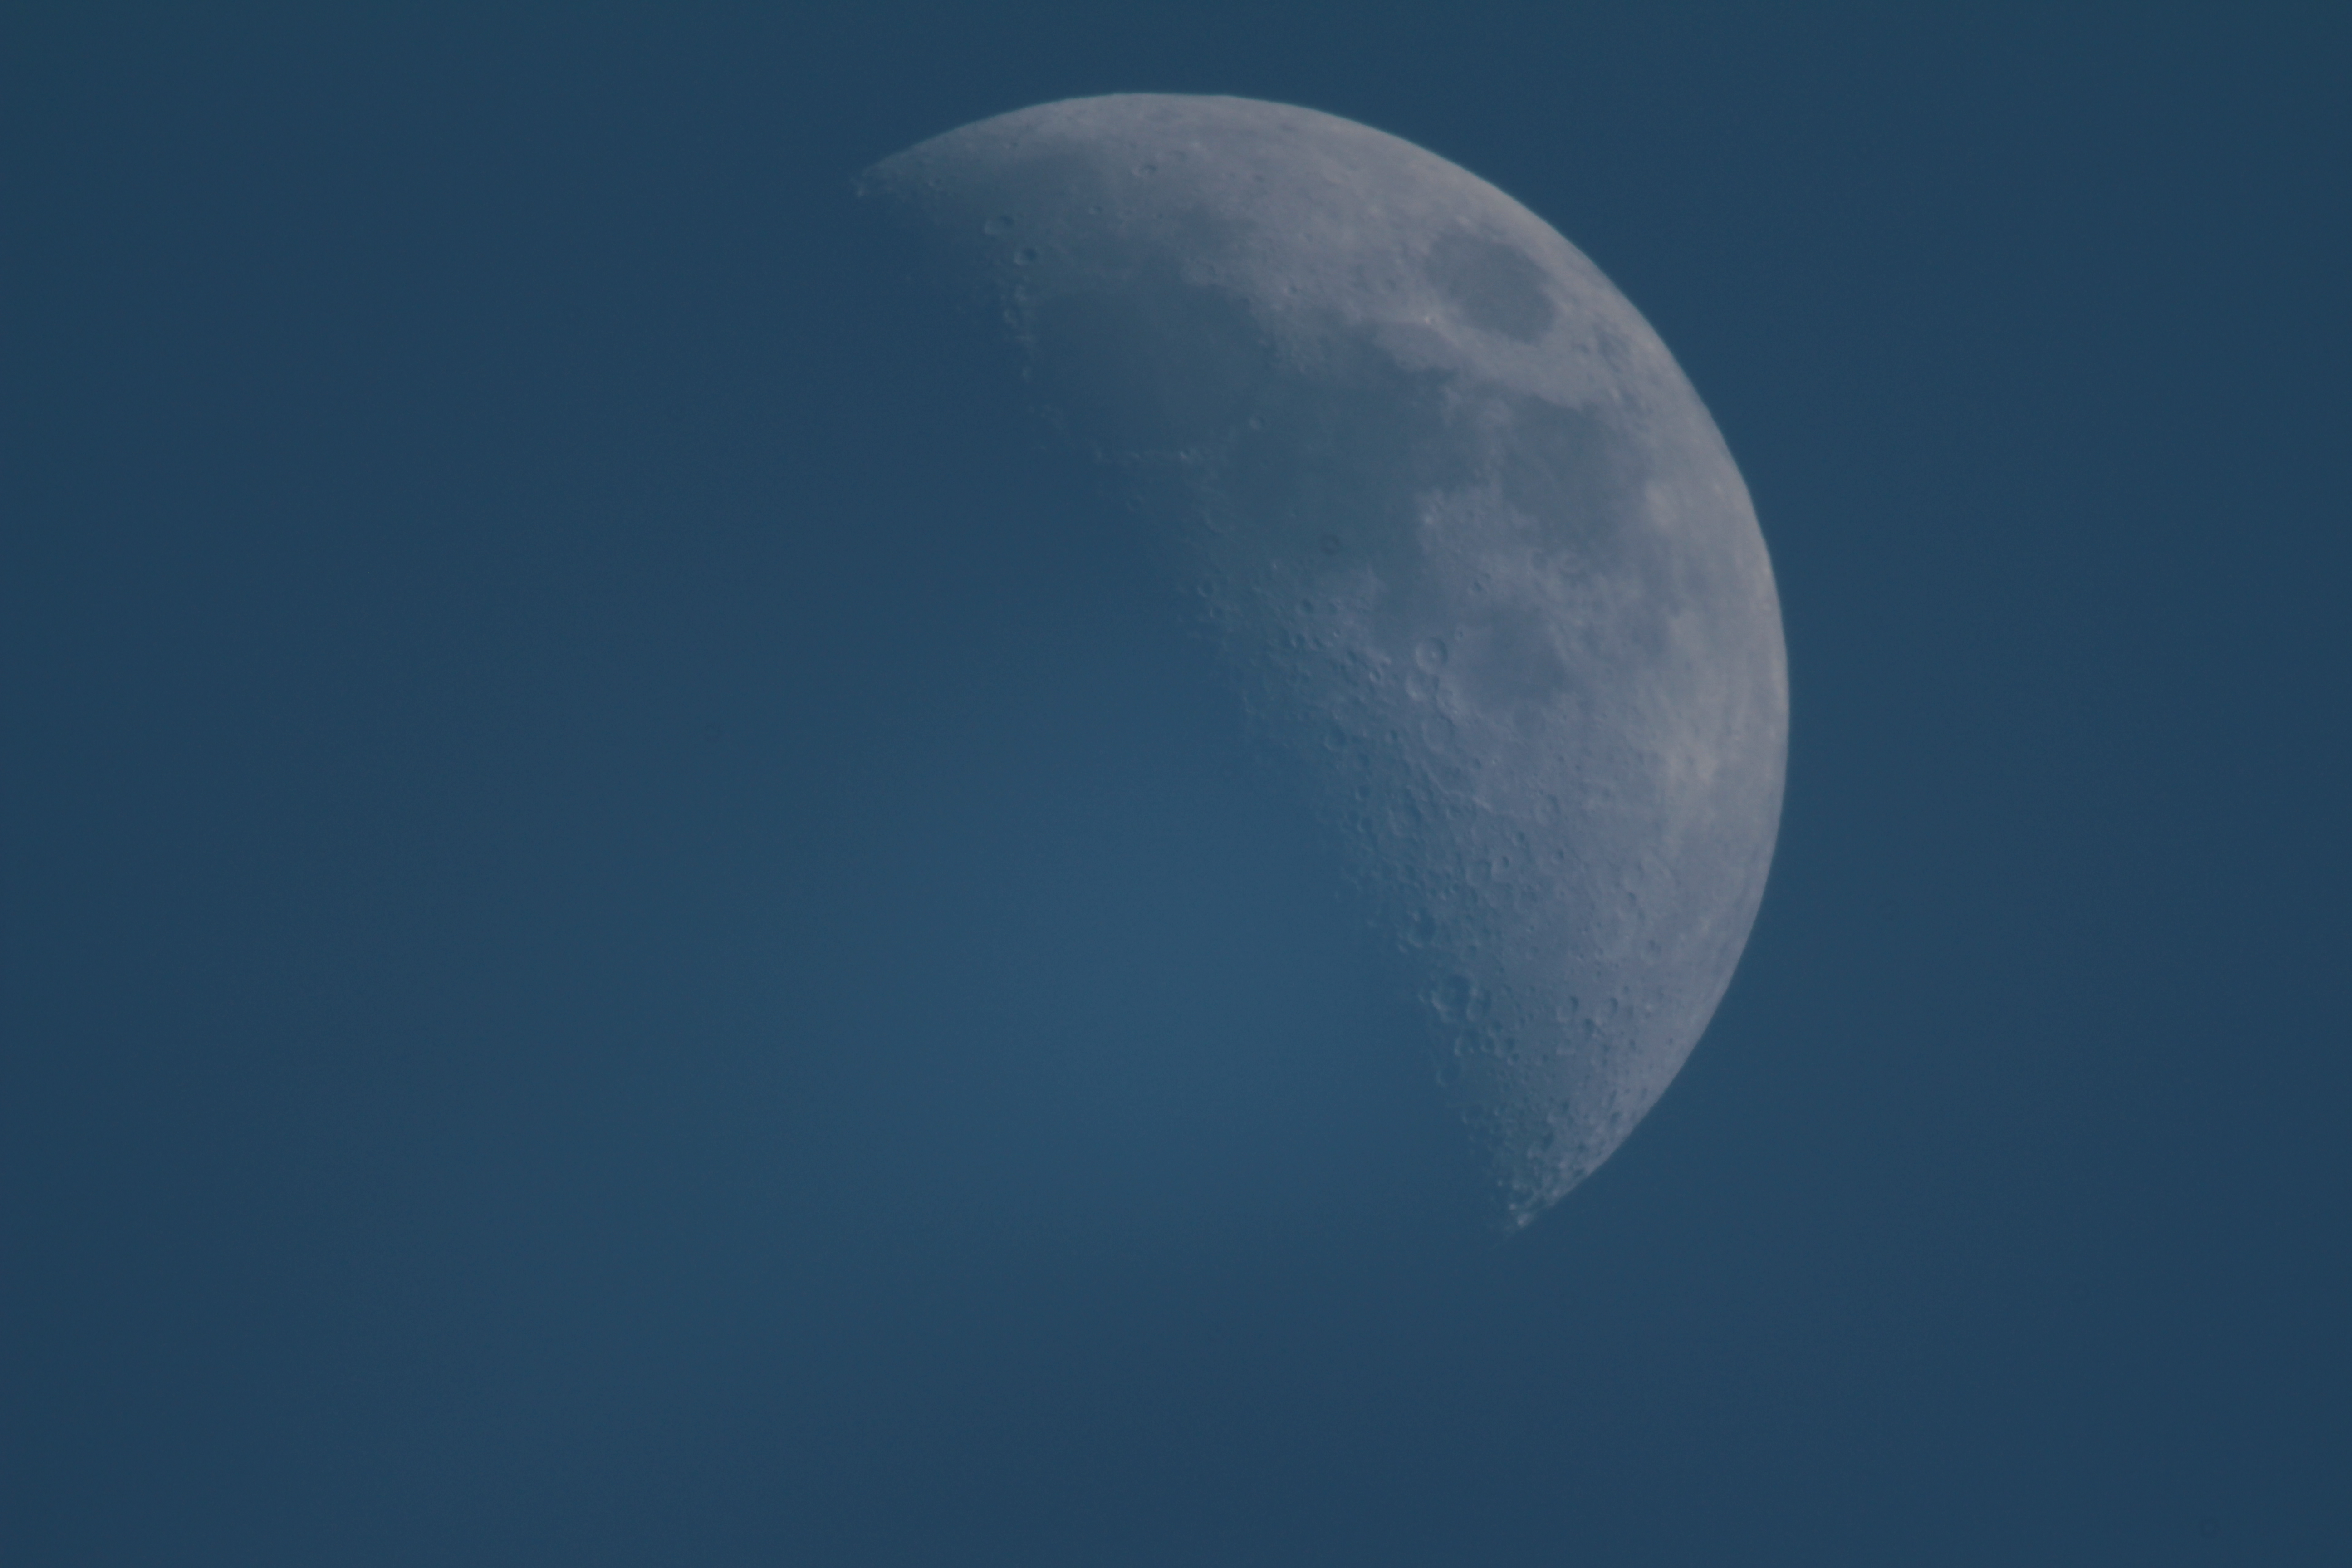 Image: A picture of the half-moon on a blue sky background.